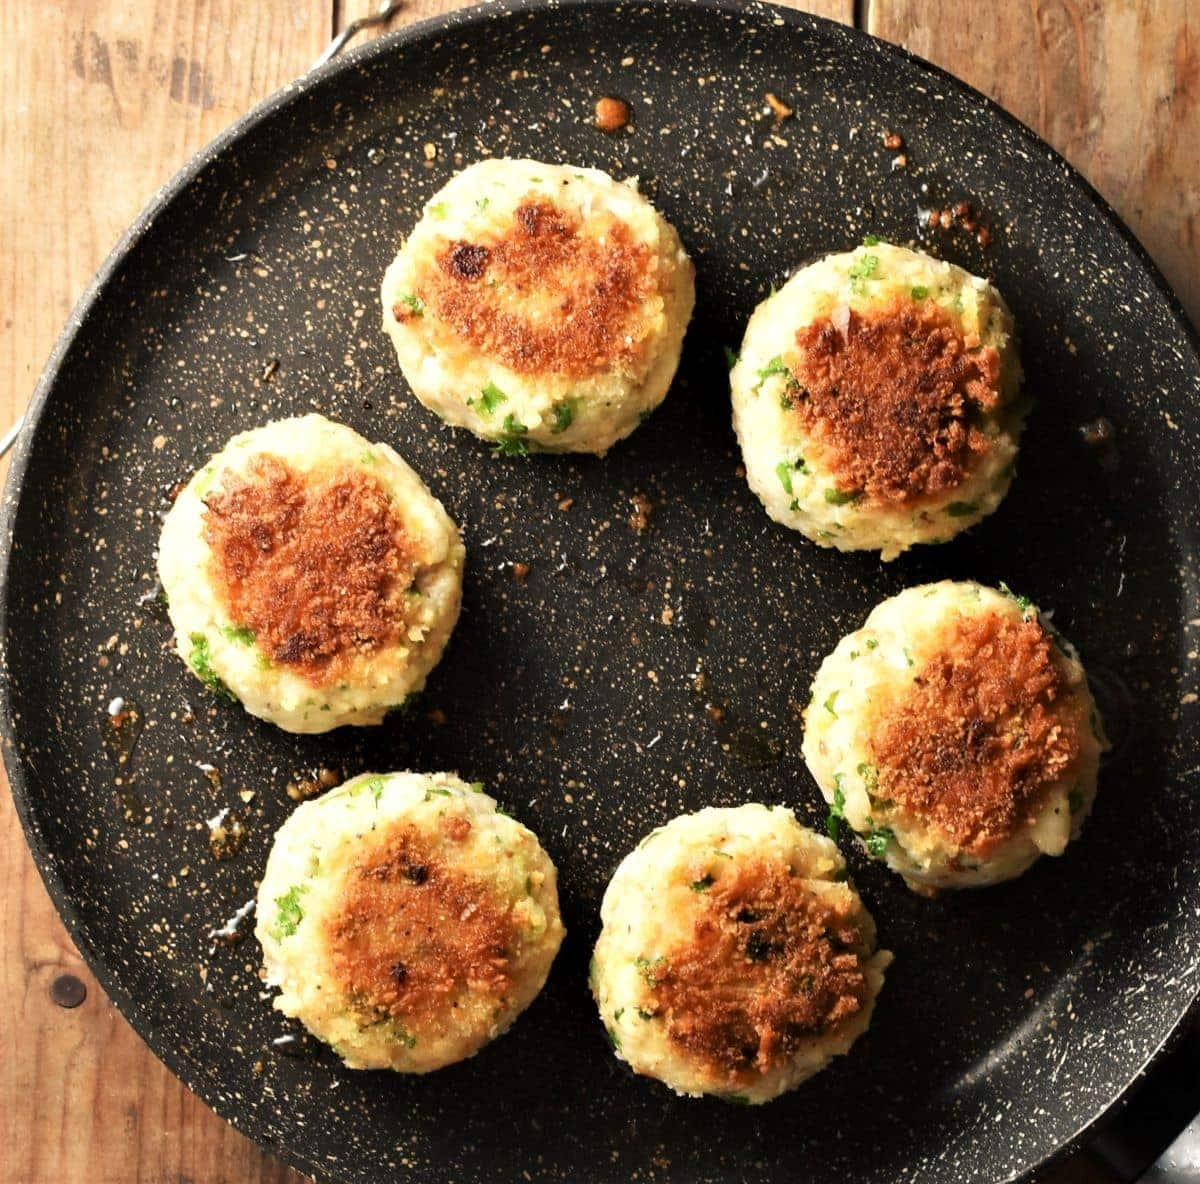 Top down view of 6 fried fishcakes in pan.